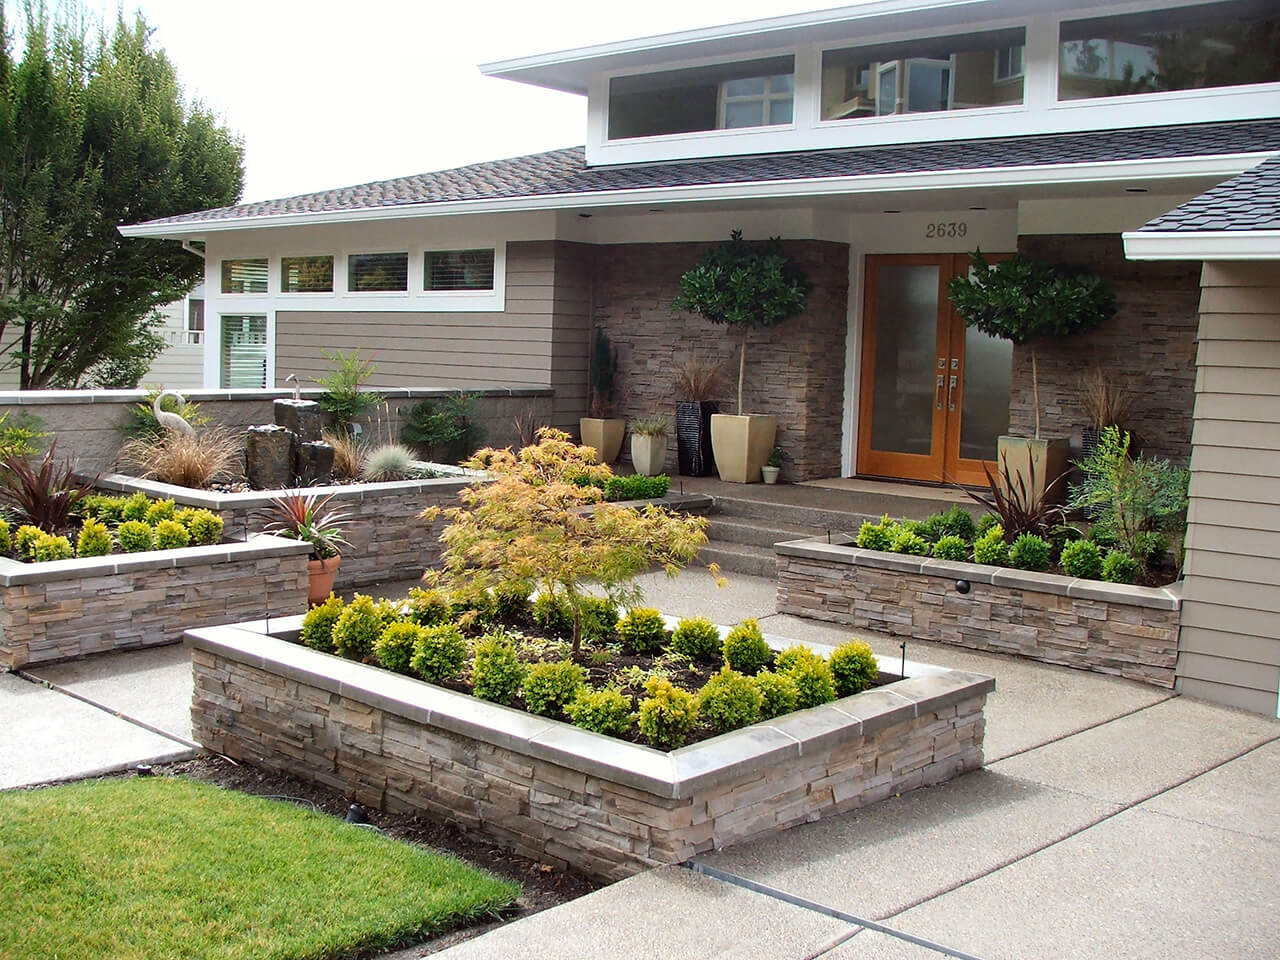 50 best front yard landscaping ideas and garden designs for Yard landscaping ideas